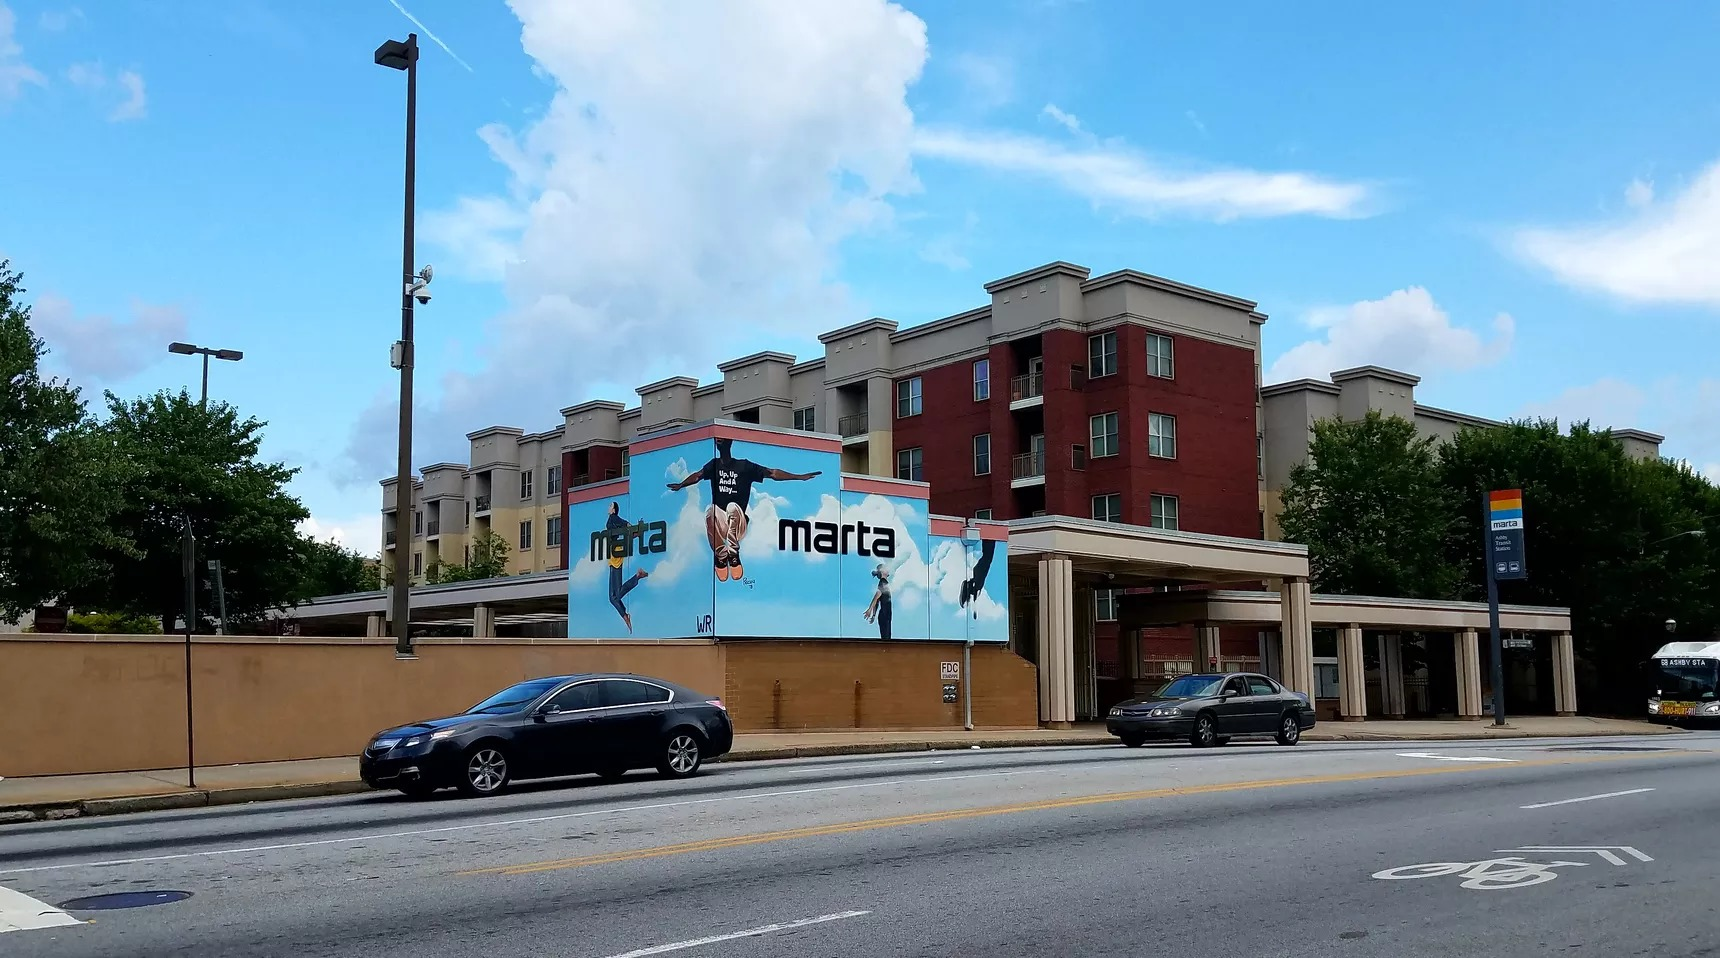 A bright blue mural is painted on the side of the Ashby MARTA station.